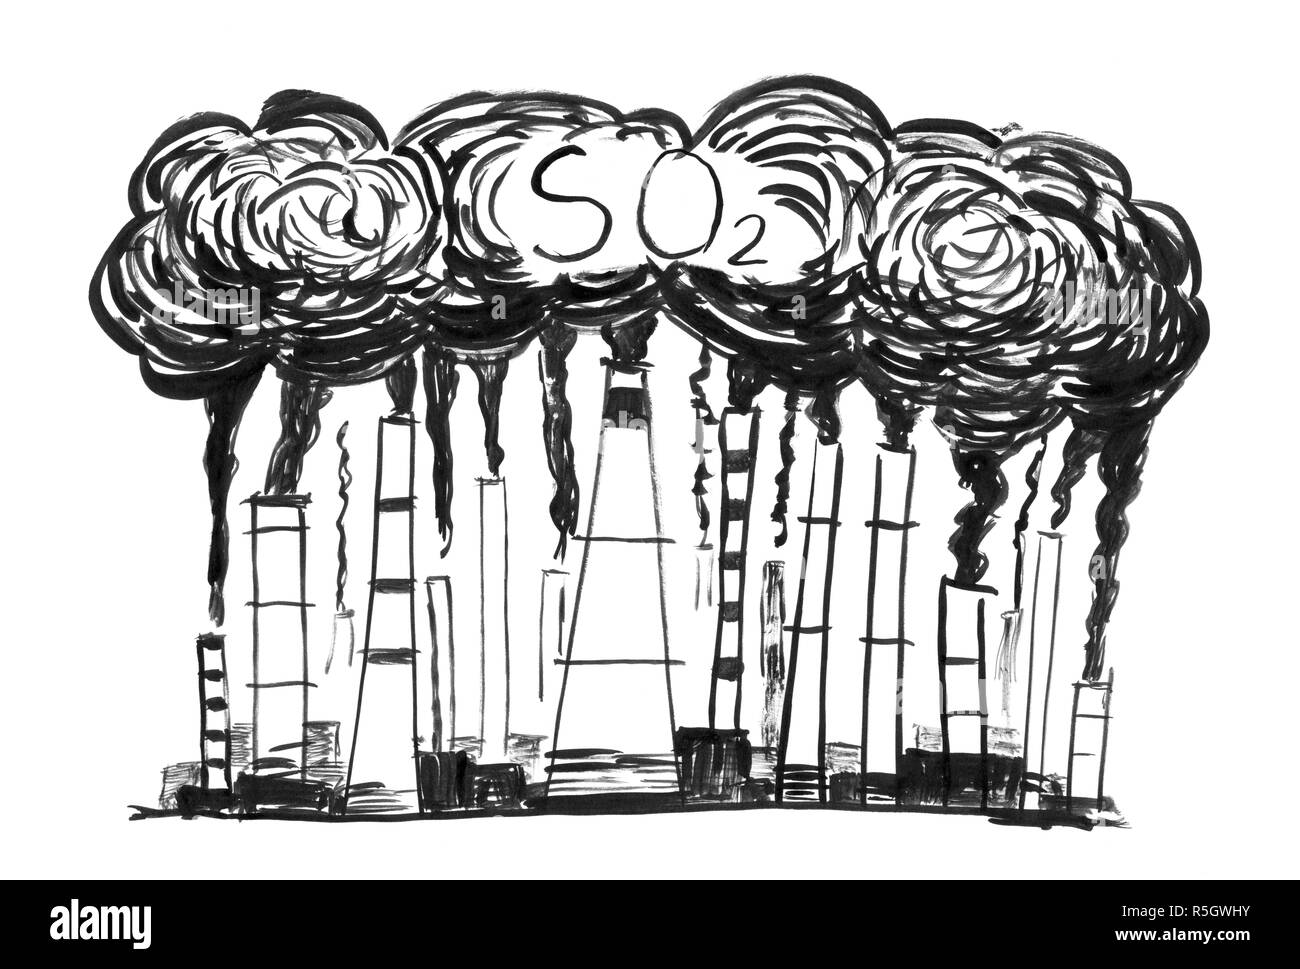 Black Ink Grunge Hand Drawing of Smoking Smokestacks, Concept of Industry or Factory SO2 Air Pollution - Stock Image